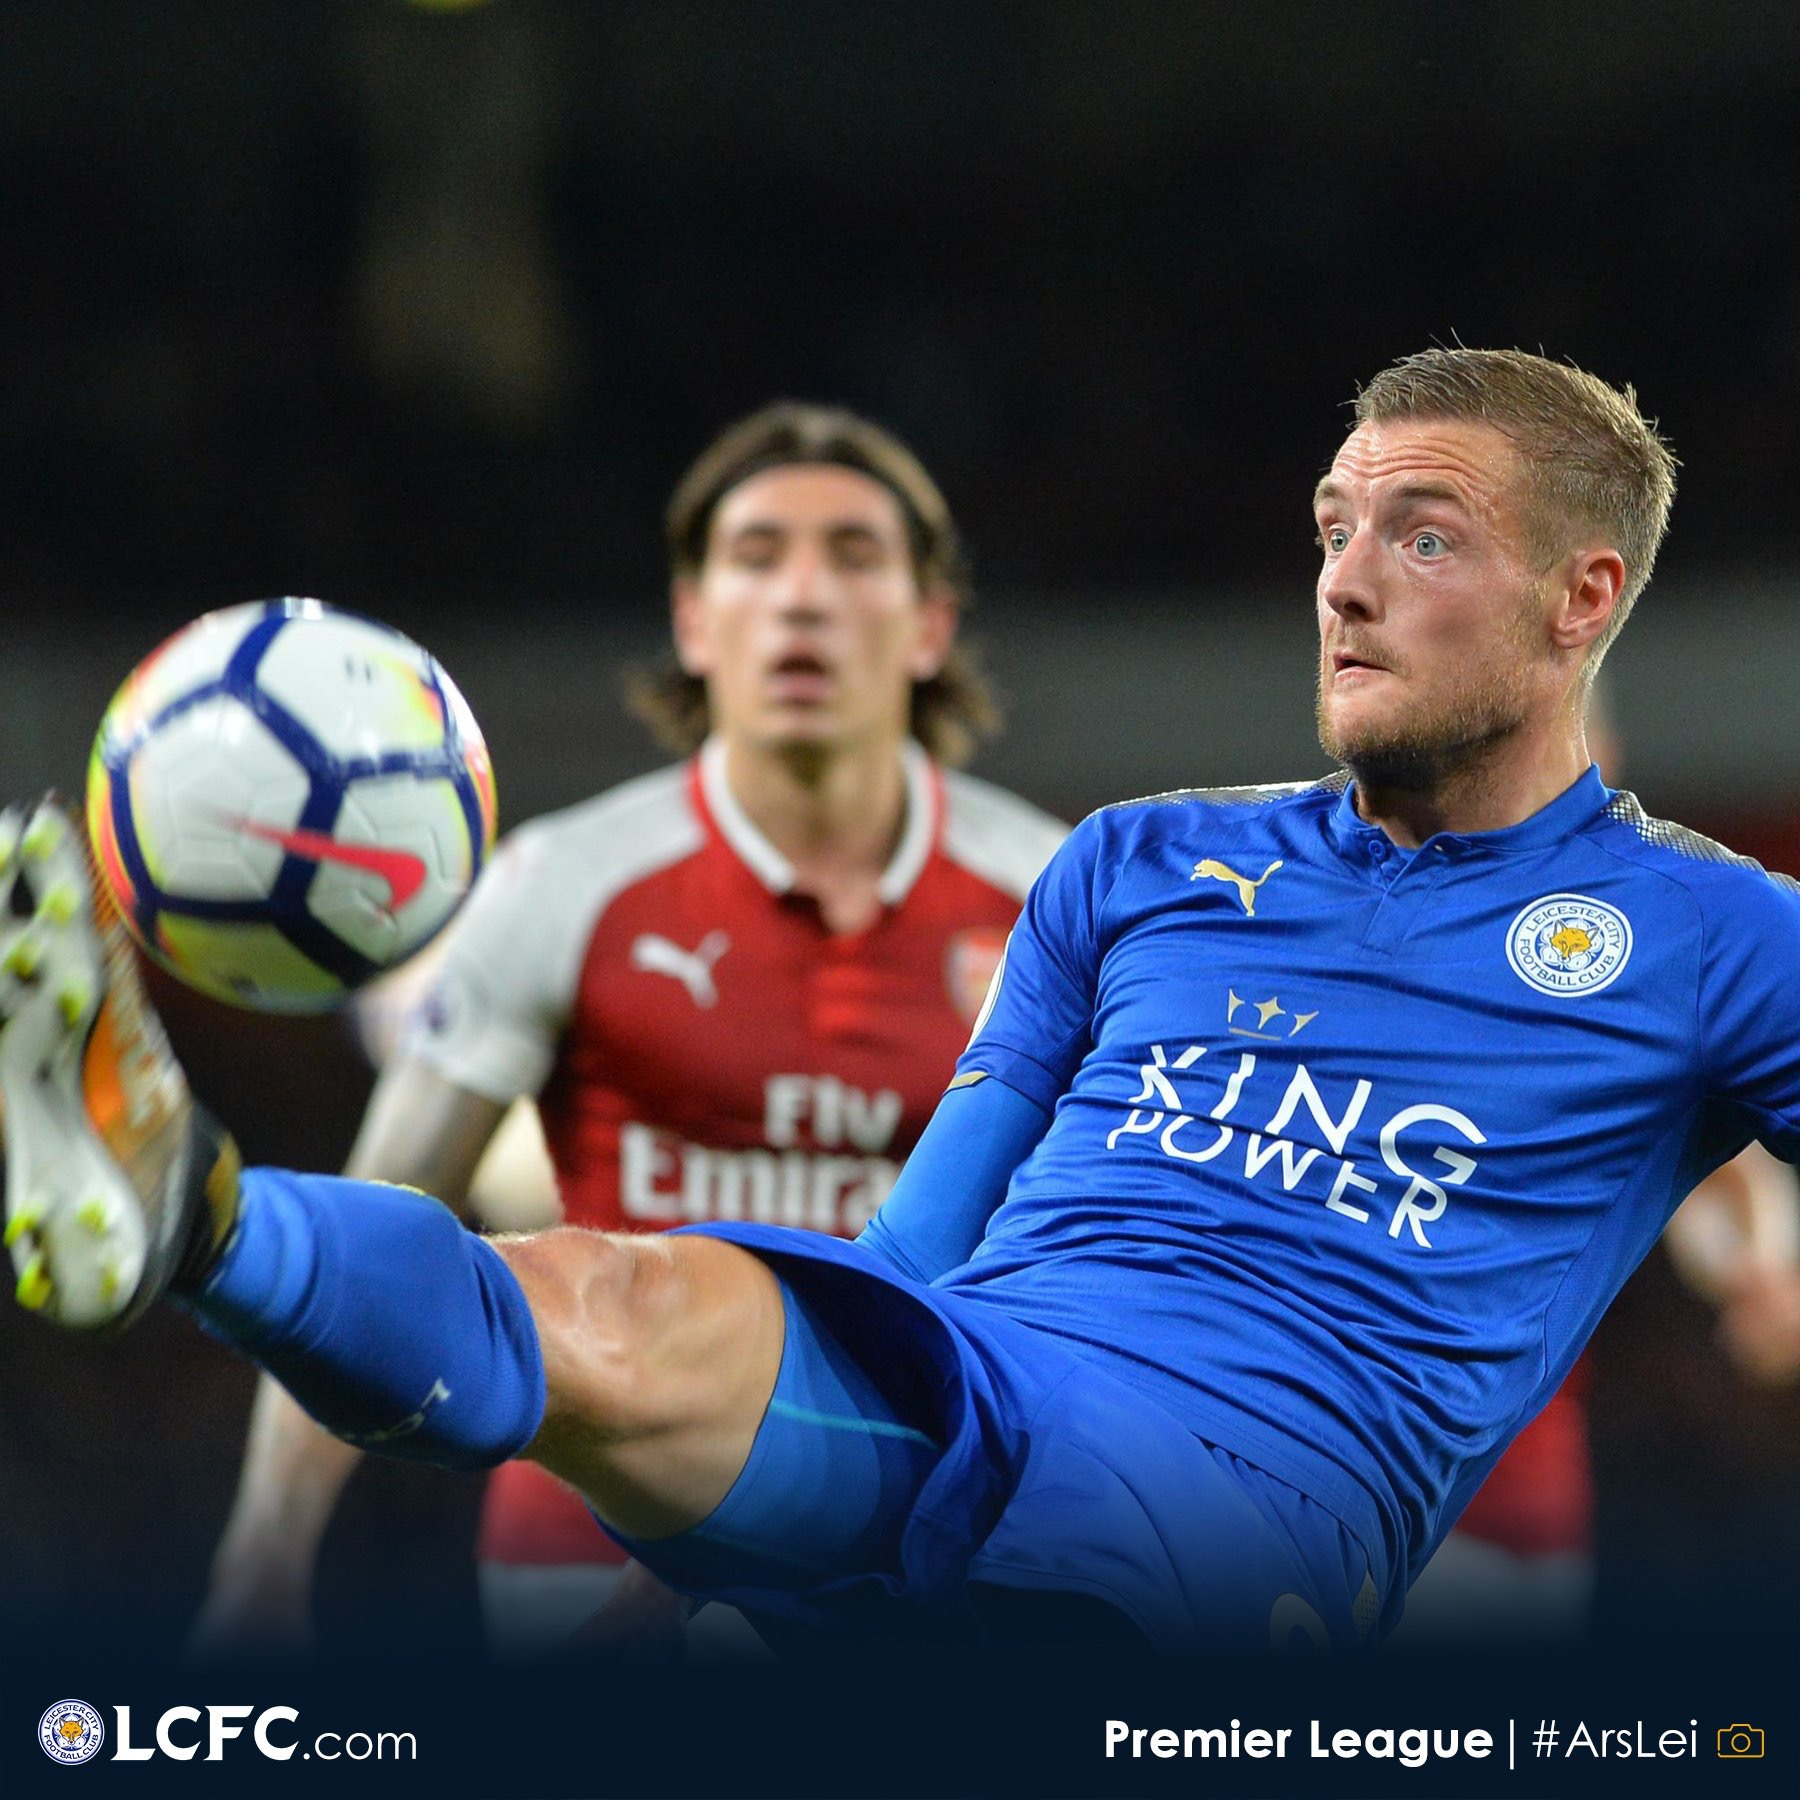 Vardy: Loss Of  Concentration Cost Leicester Three Points Vs Arsenal